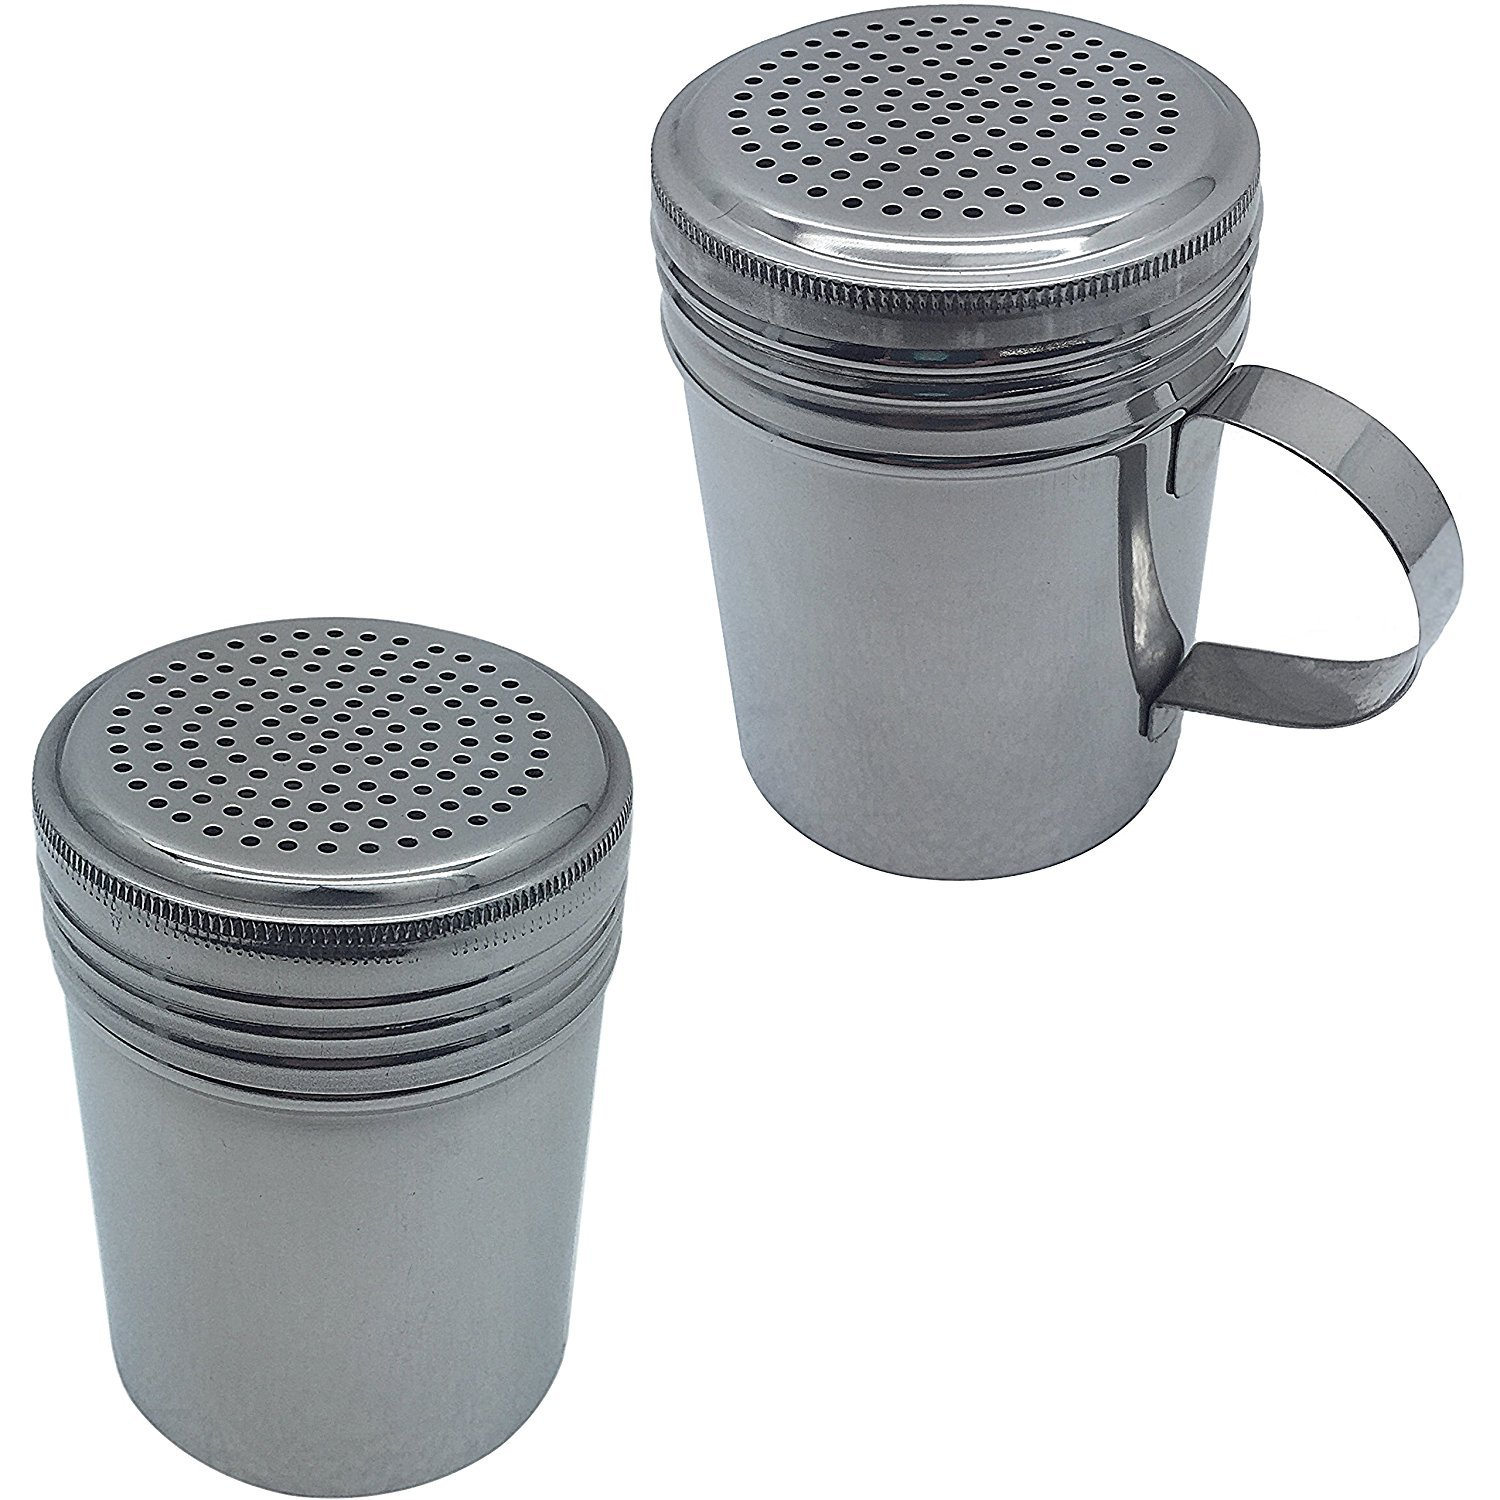 Set of 2 Stainless Steel Dredge Shakers, With Handle and Without Handle UpdateInternational COMINHKPR103119